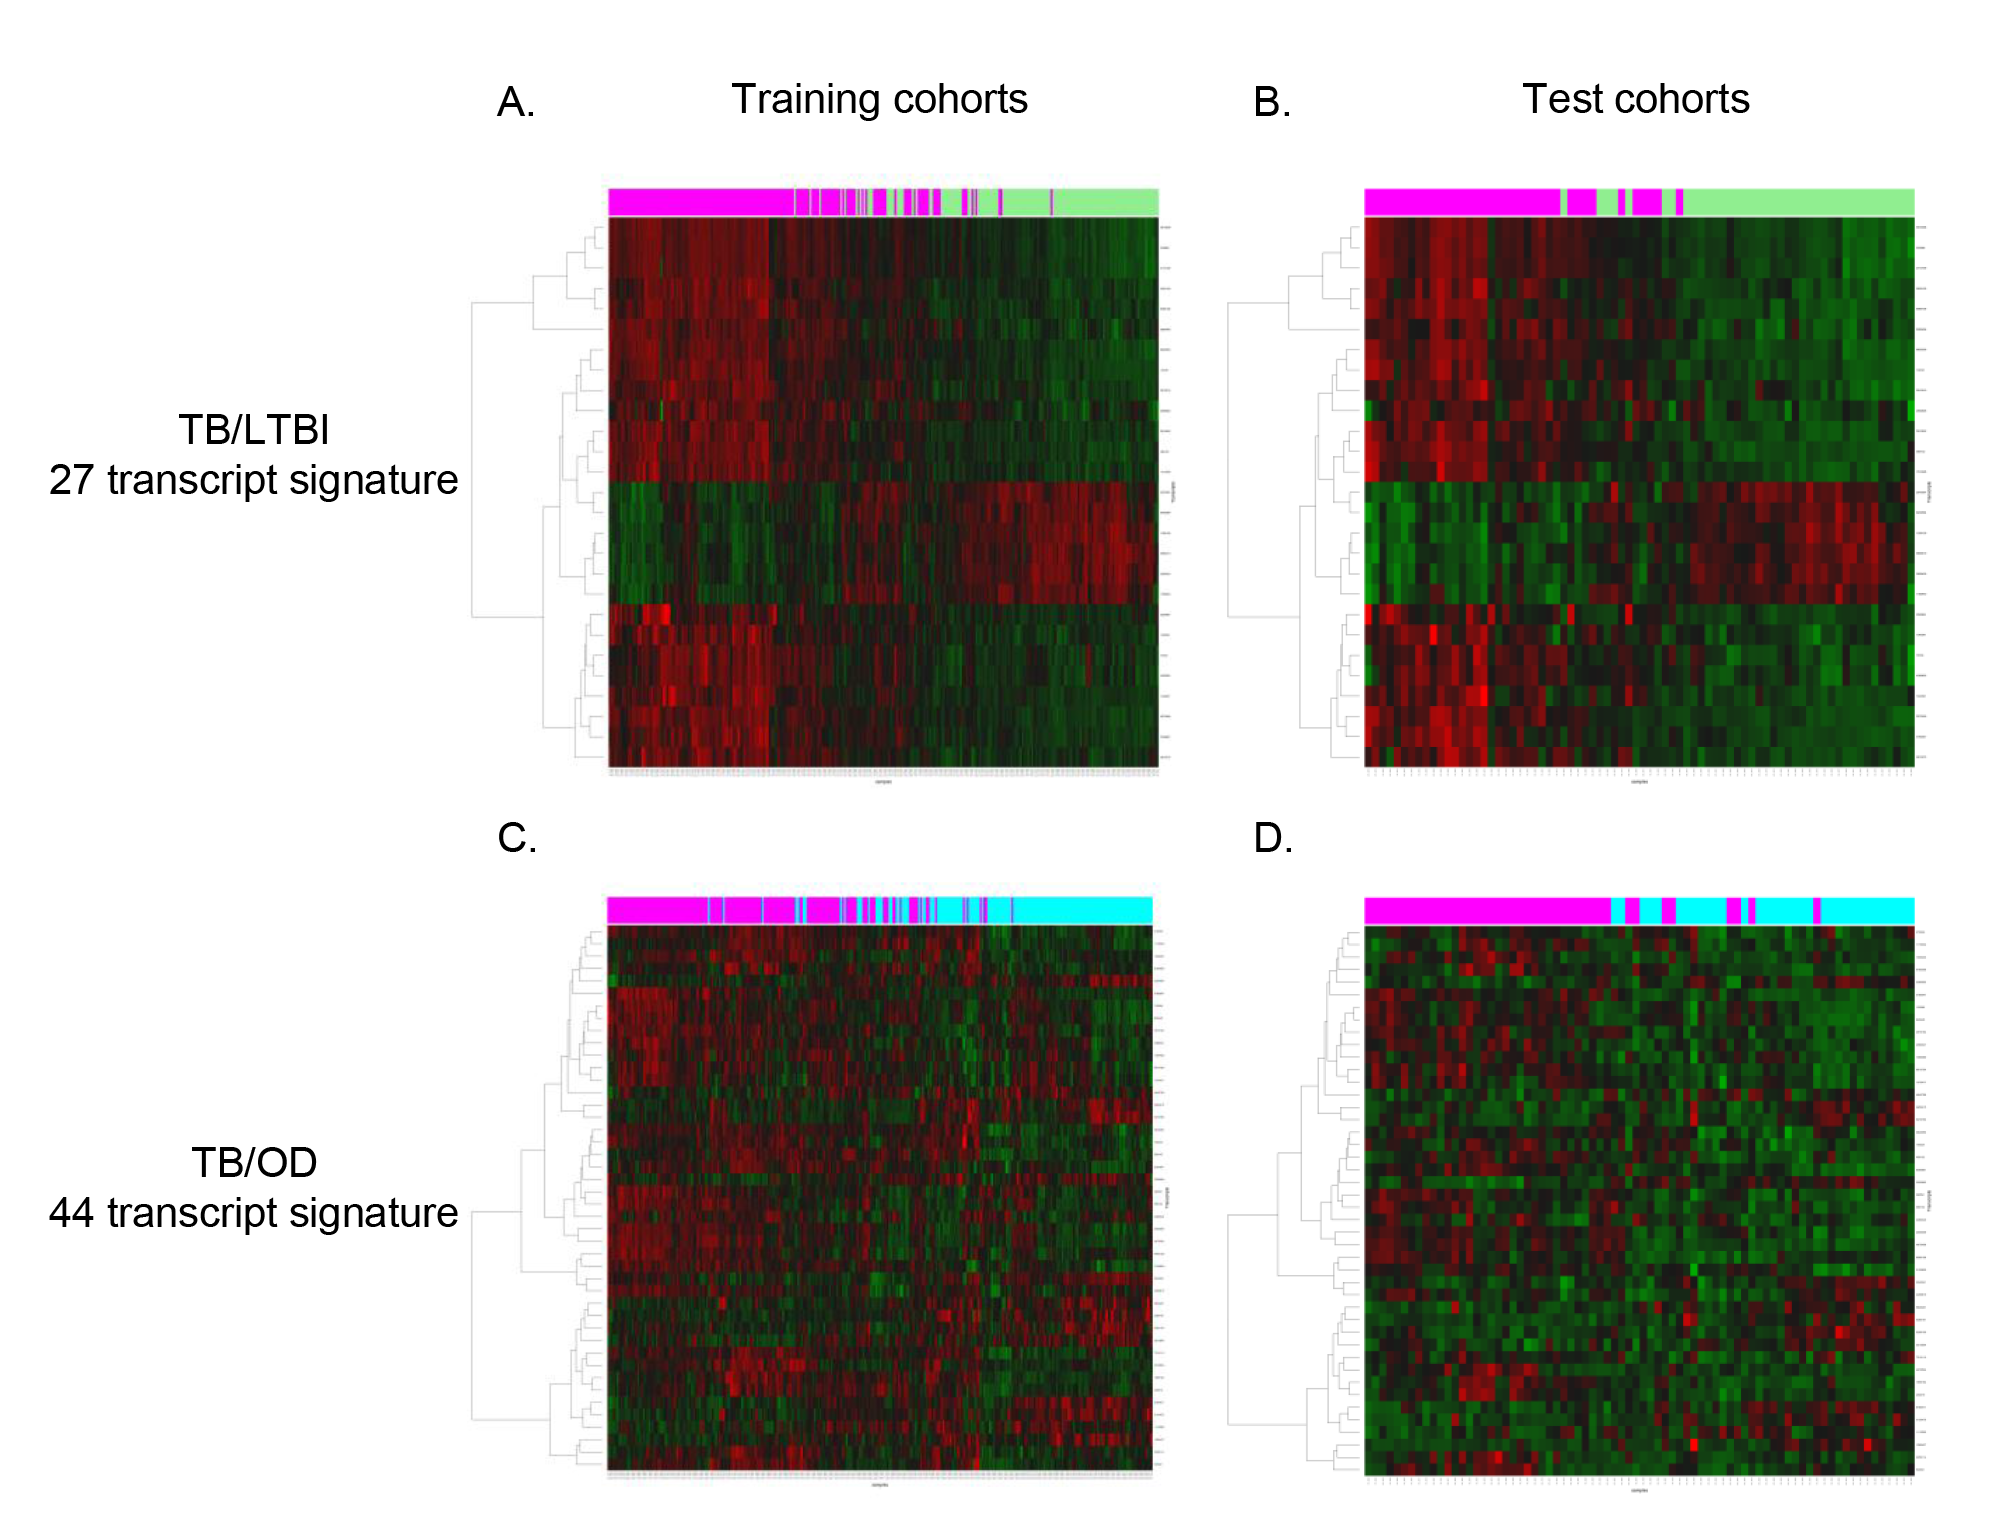 Heatmaps showing clustering of training and test cohorts using transcriptional signatures.